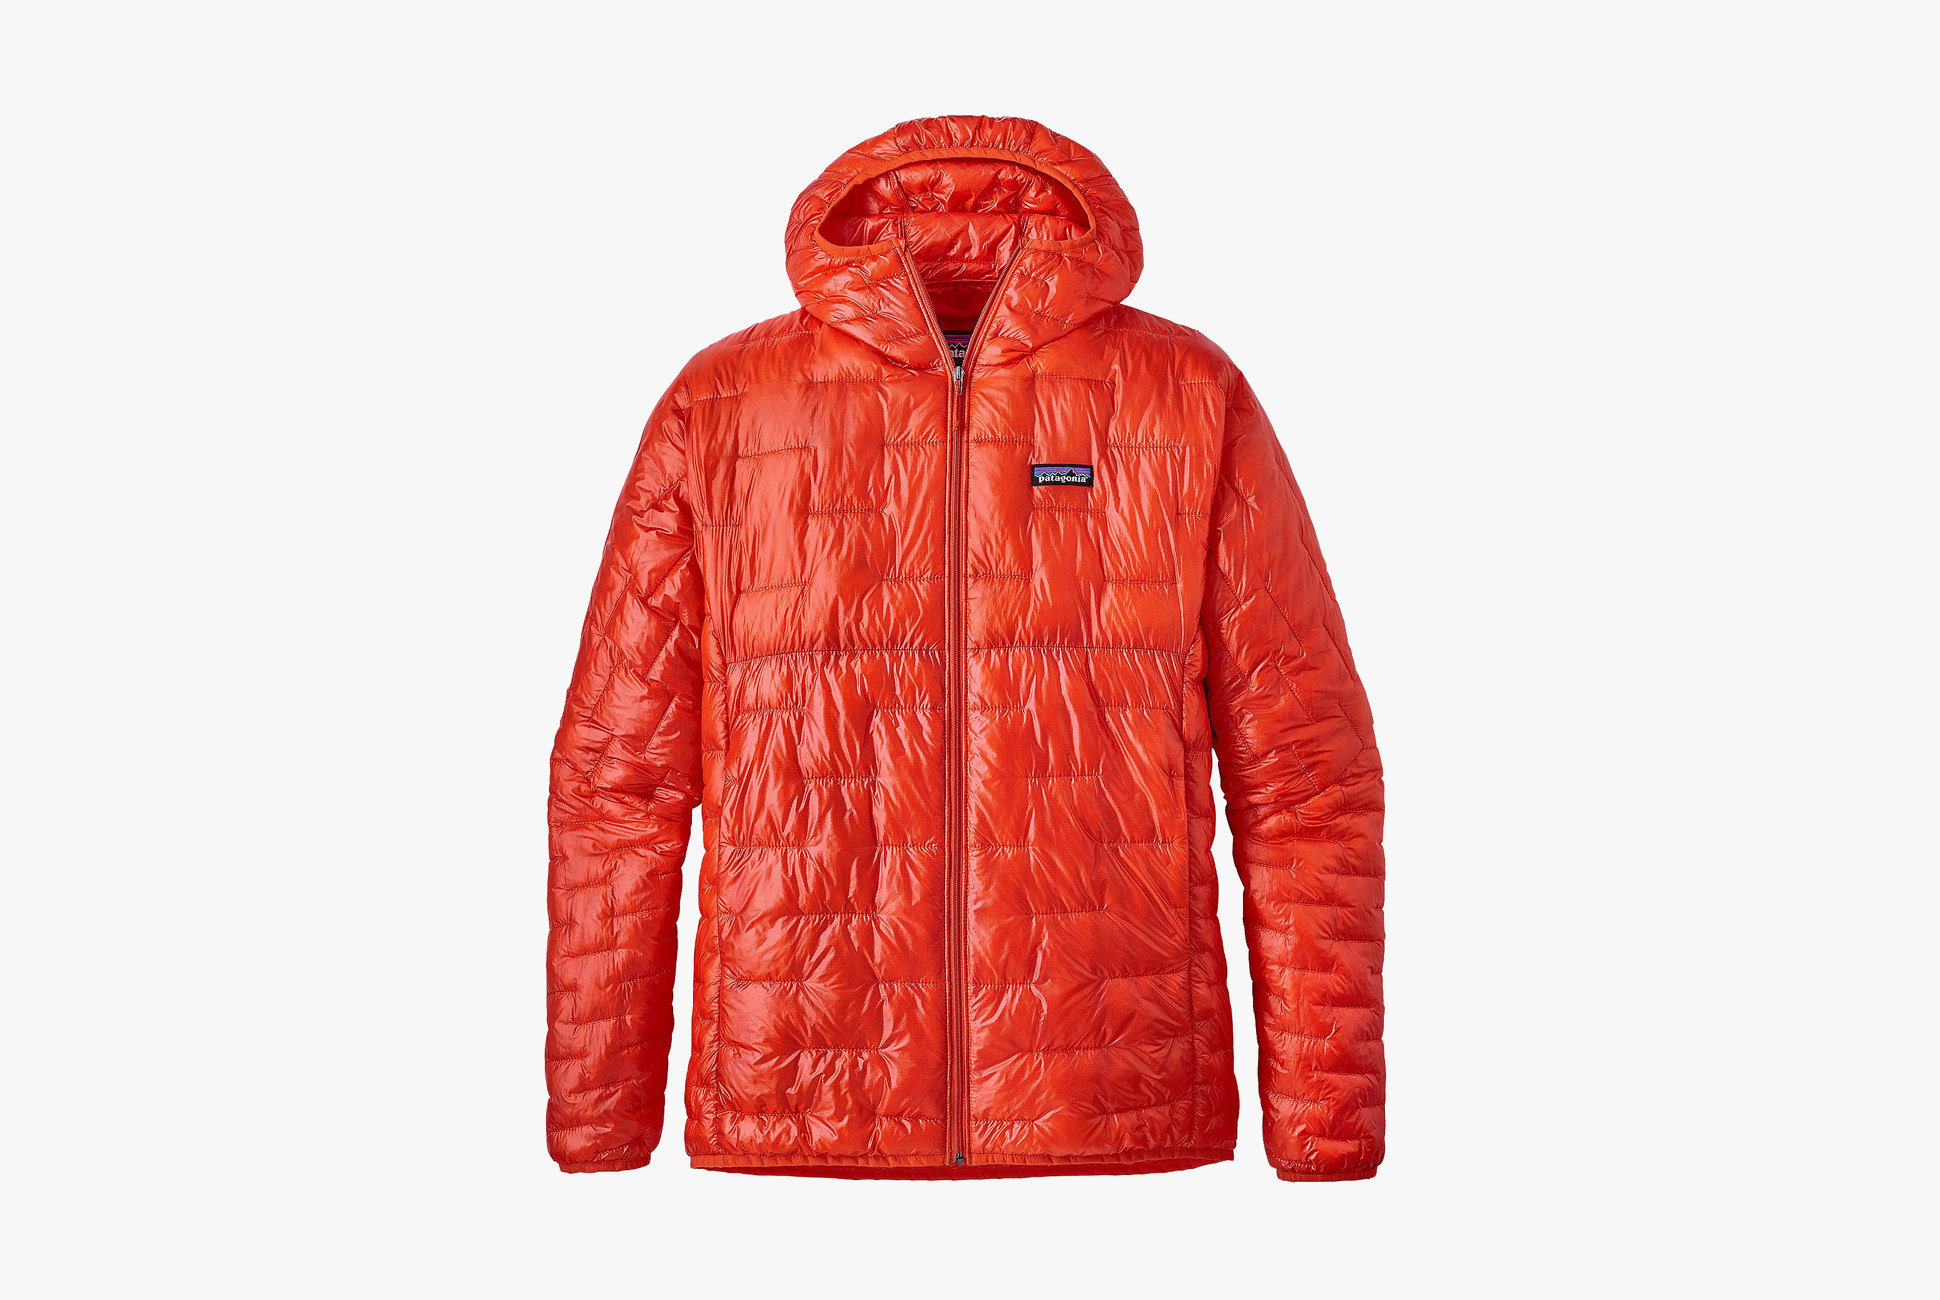 Patagonia Perfected the Puffy Jacket 19